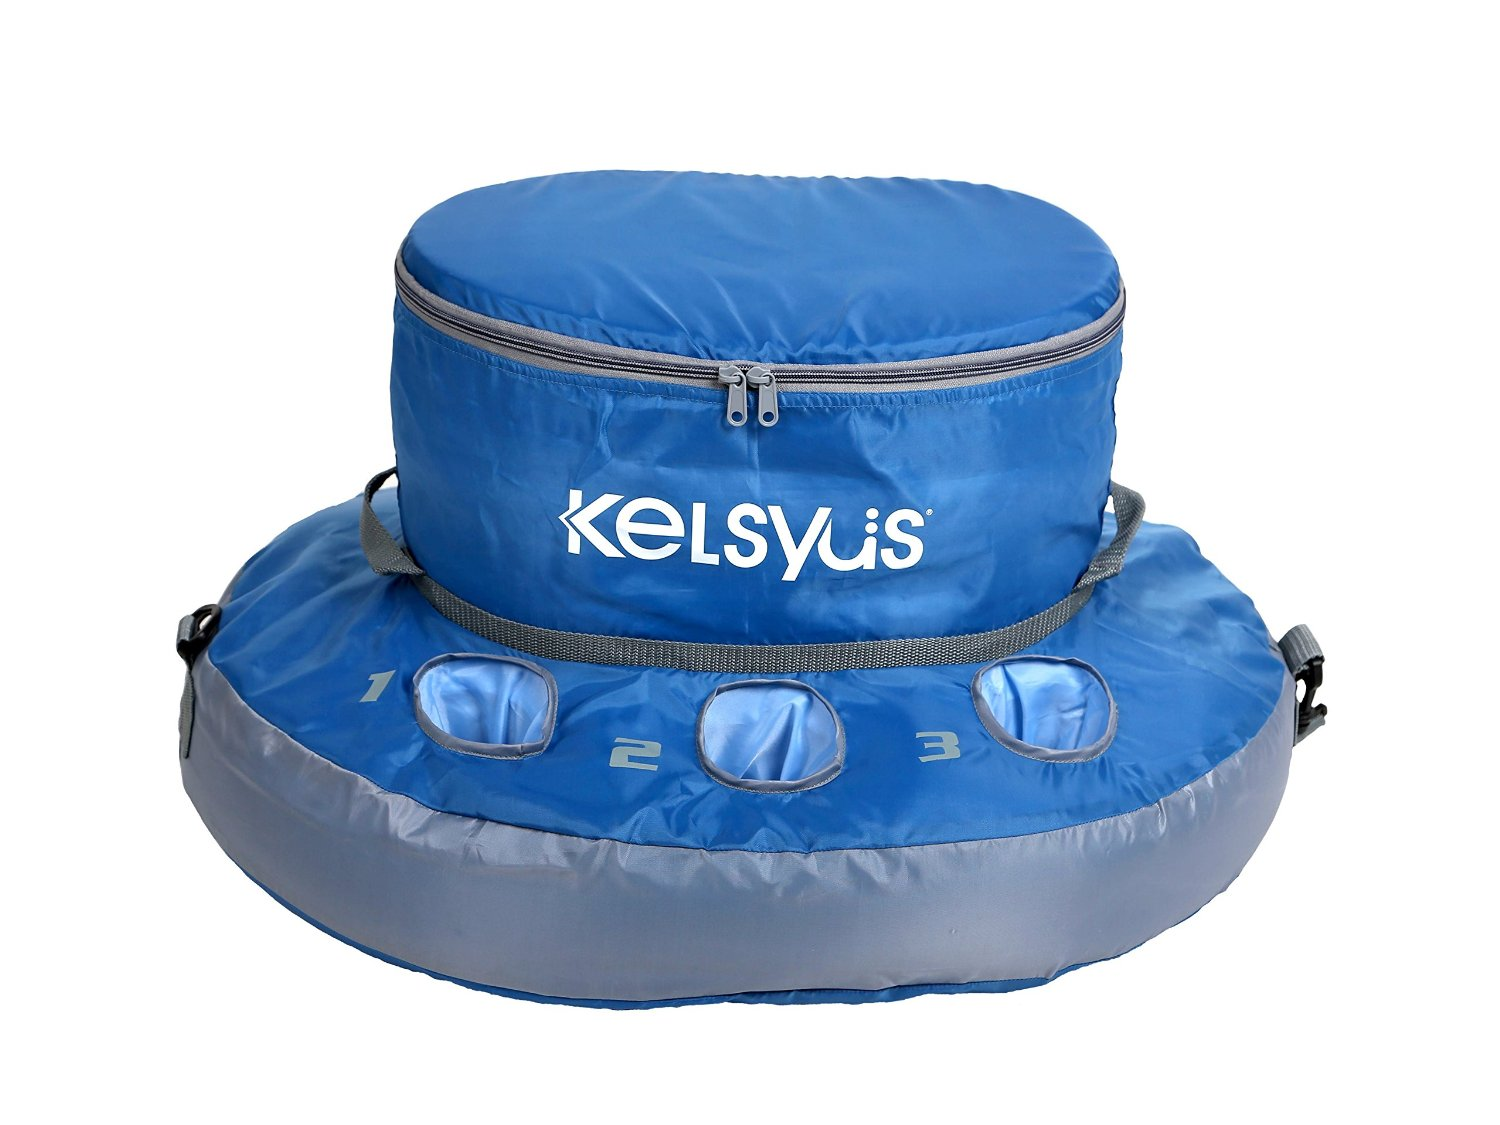 Kelsyus SwimWays OS Floating Cooler, Blue